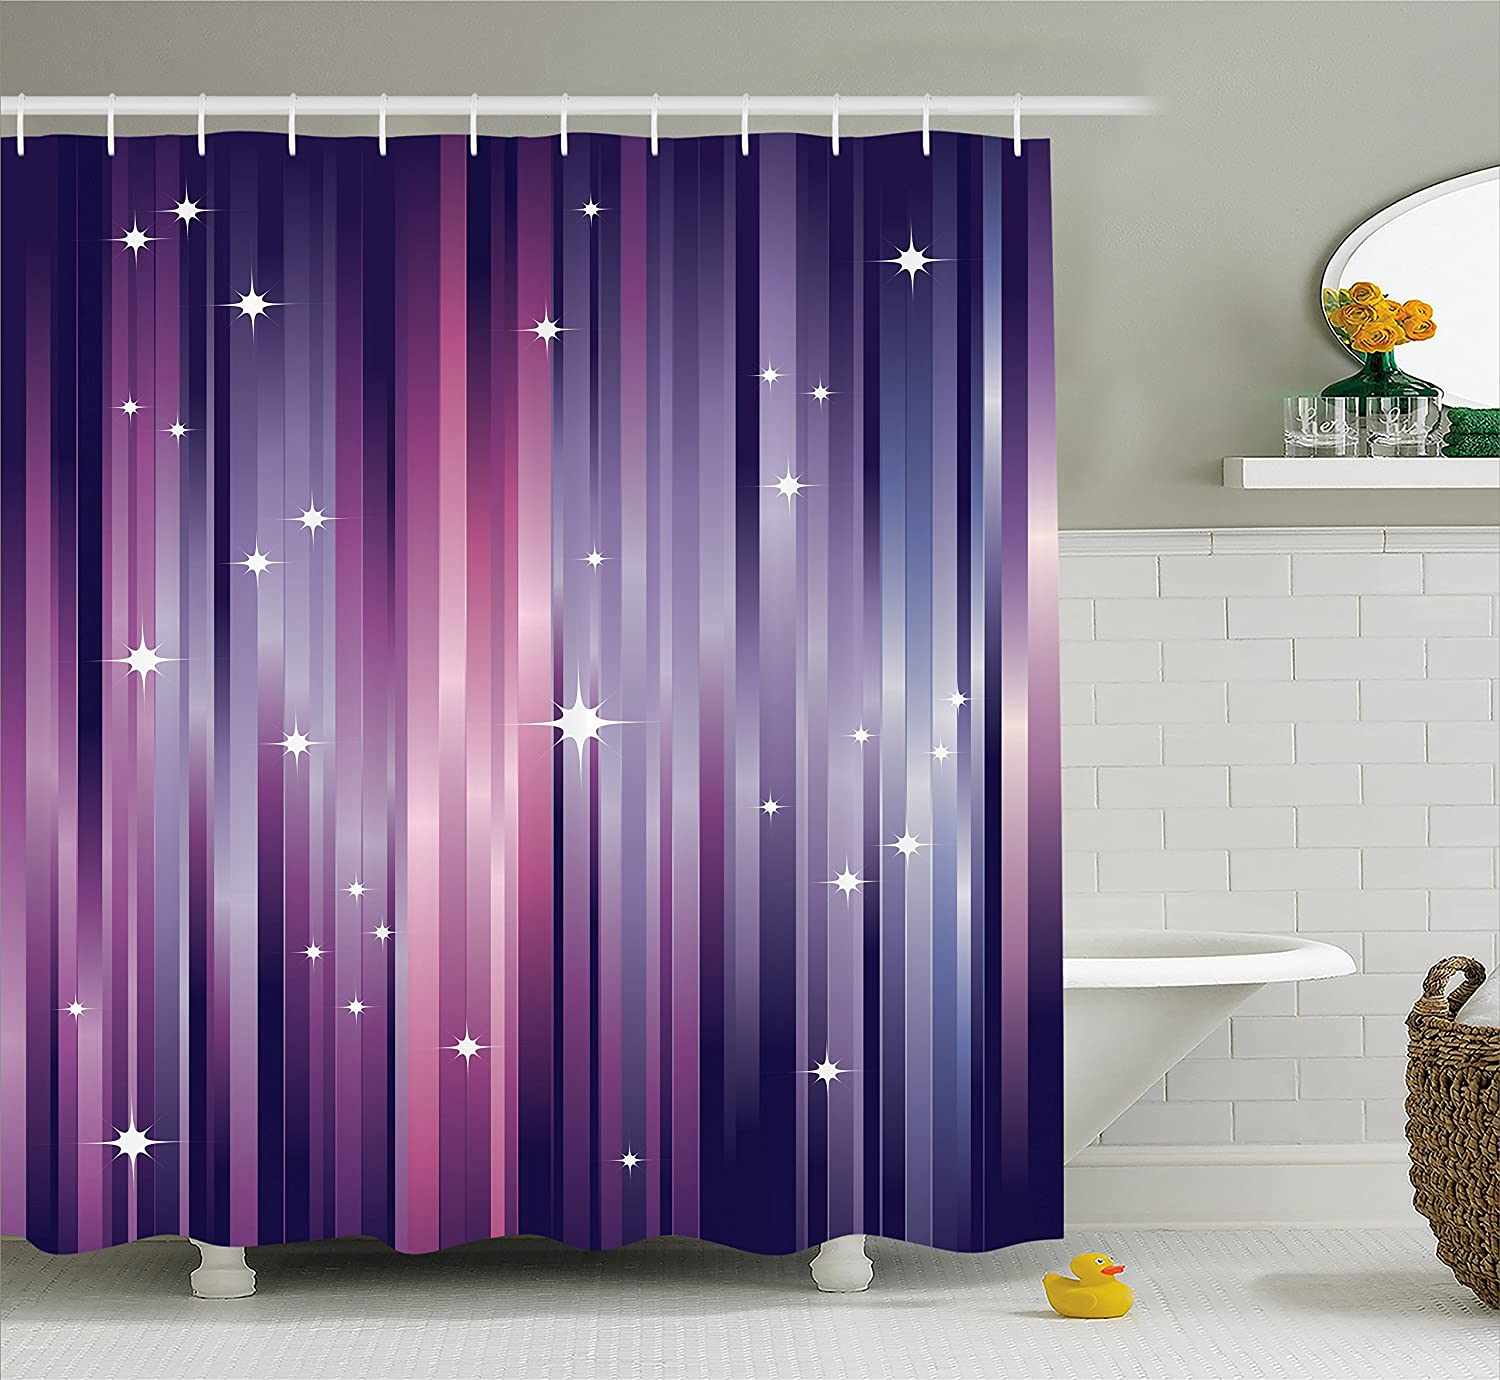 Amazon.com: Ambesonne Eggplant Shower Curtain, Abstract Colourful ...